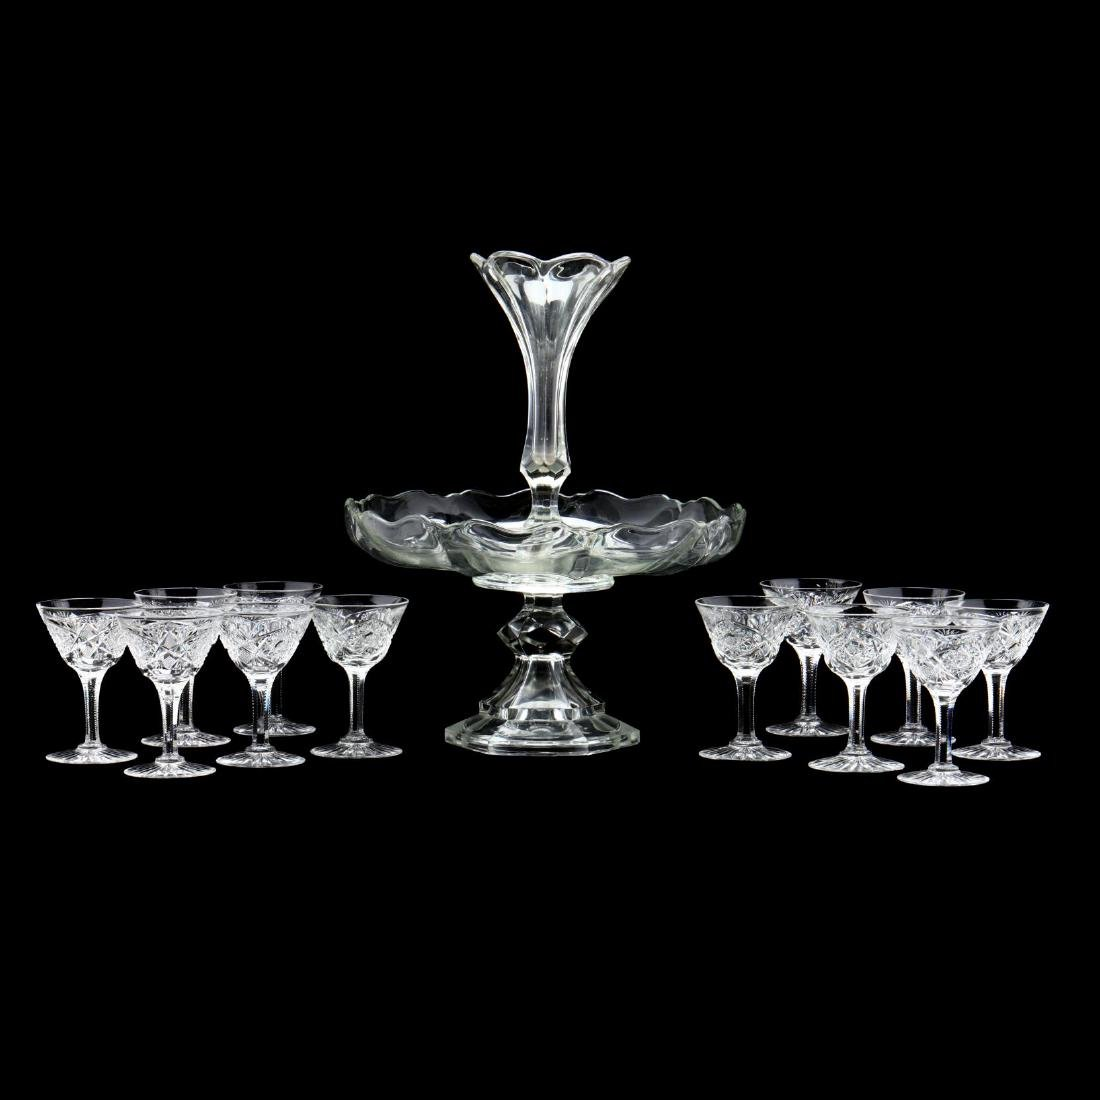 Vintage Glass Epergne and Coupes